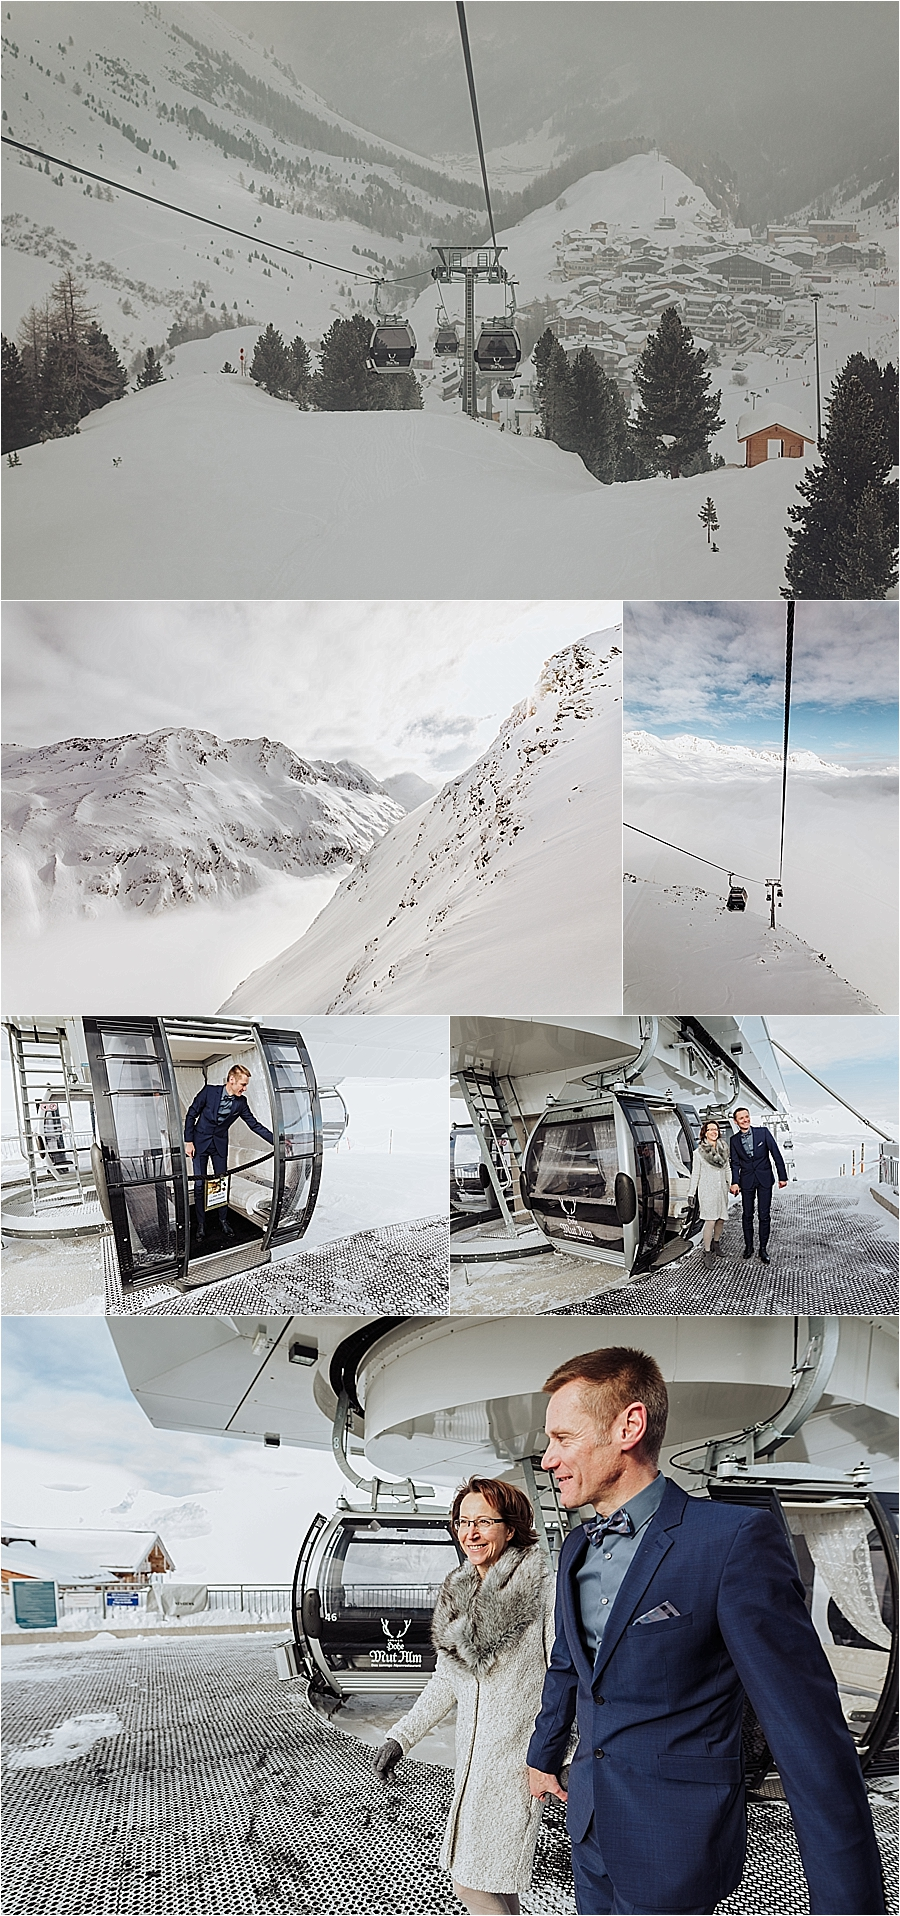 The bride & groom ride the gondola up the mountain in Obergurgl by Wild Connections Photography